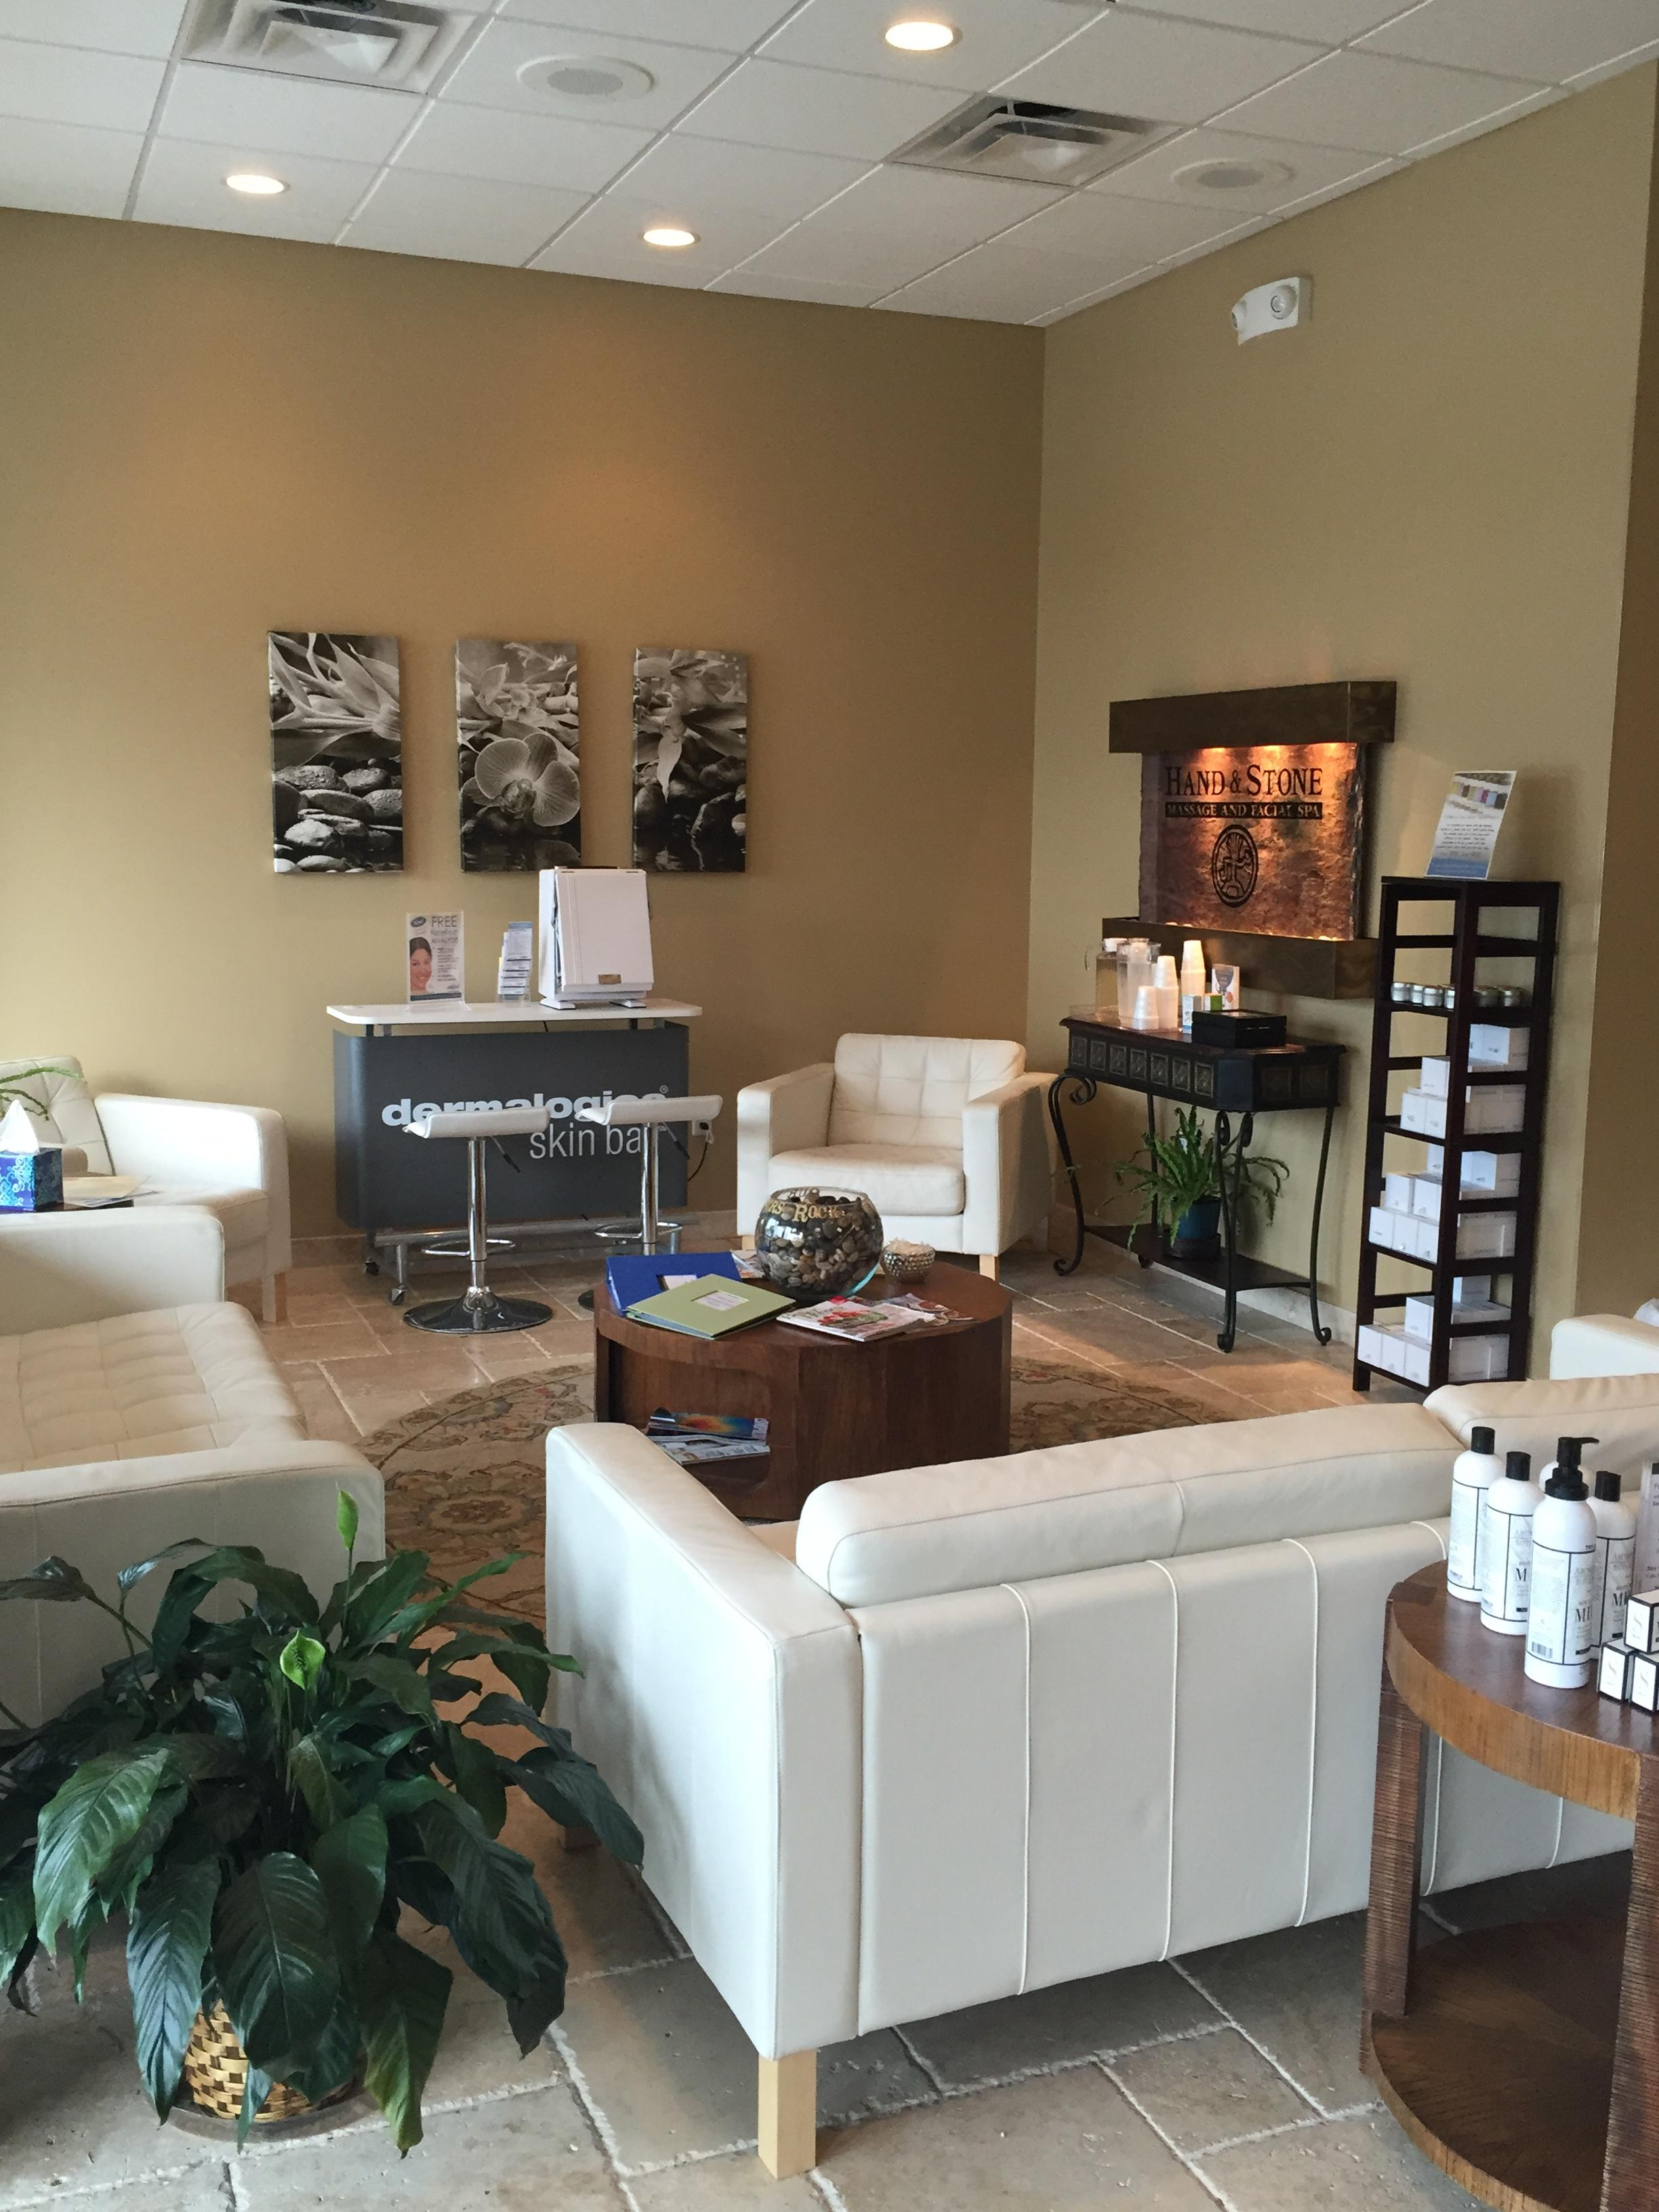 Hand & Stone Massage and Facial Spa Coupons Fleming Island ...